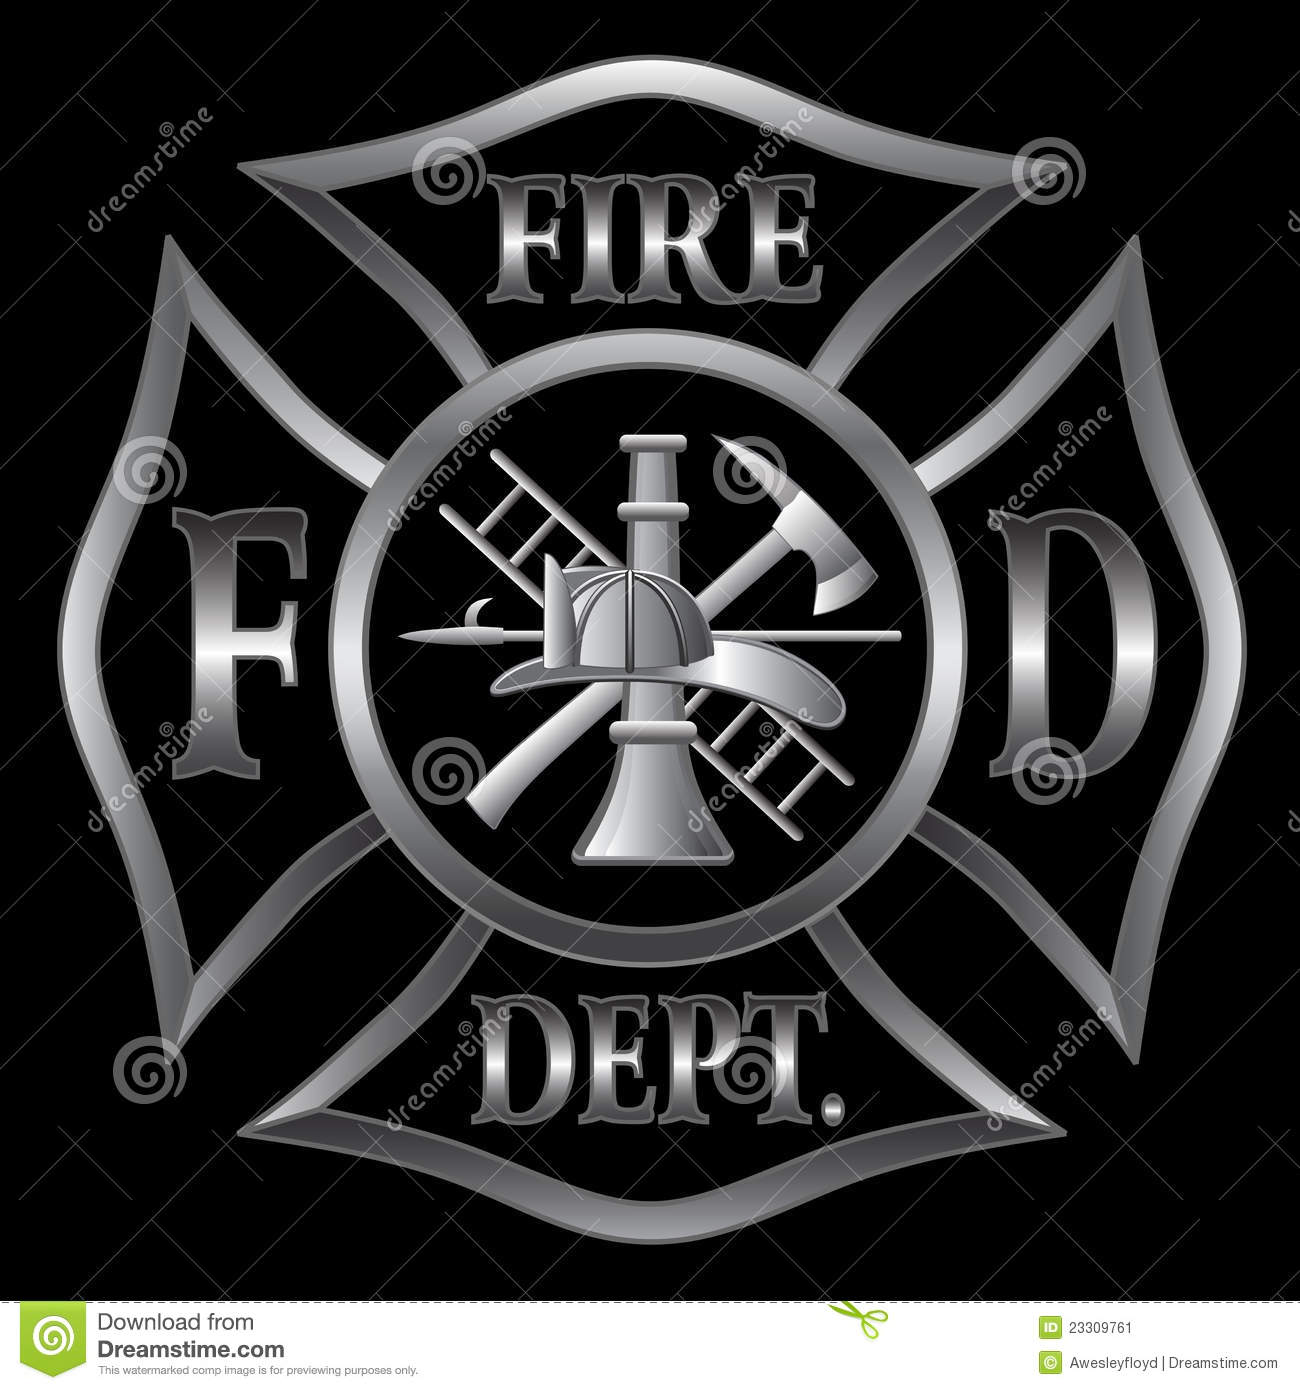 Fire Department or Firefighter's Maltese Cross Symbol in silver on ...